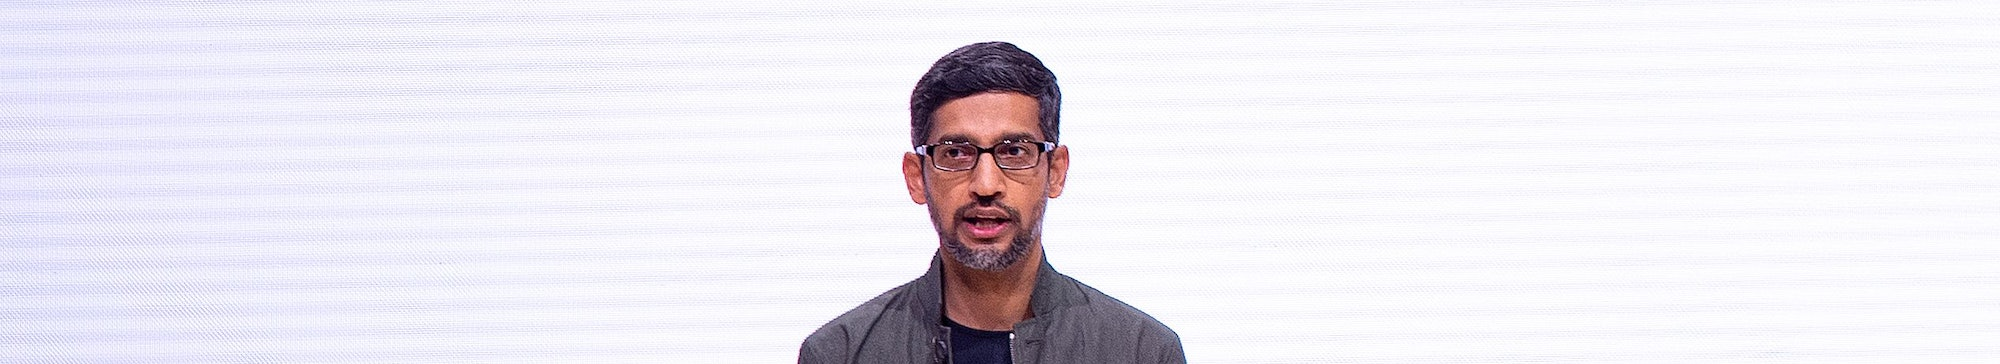 "Google CEO Sundar Pichai in front of the Google ""G"" letter."